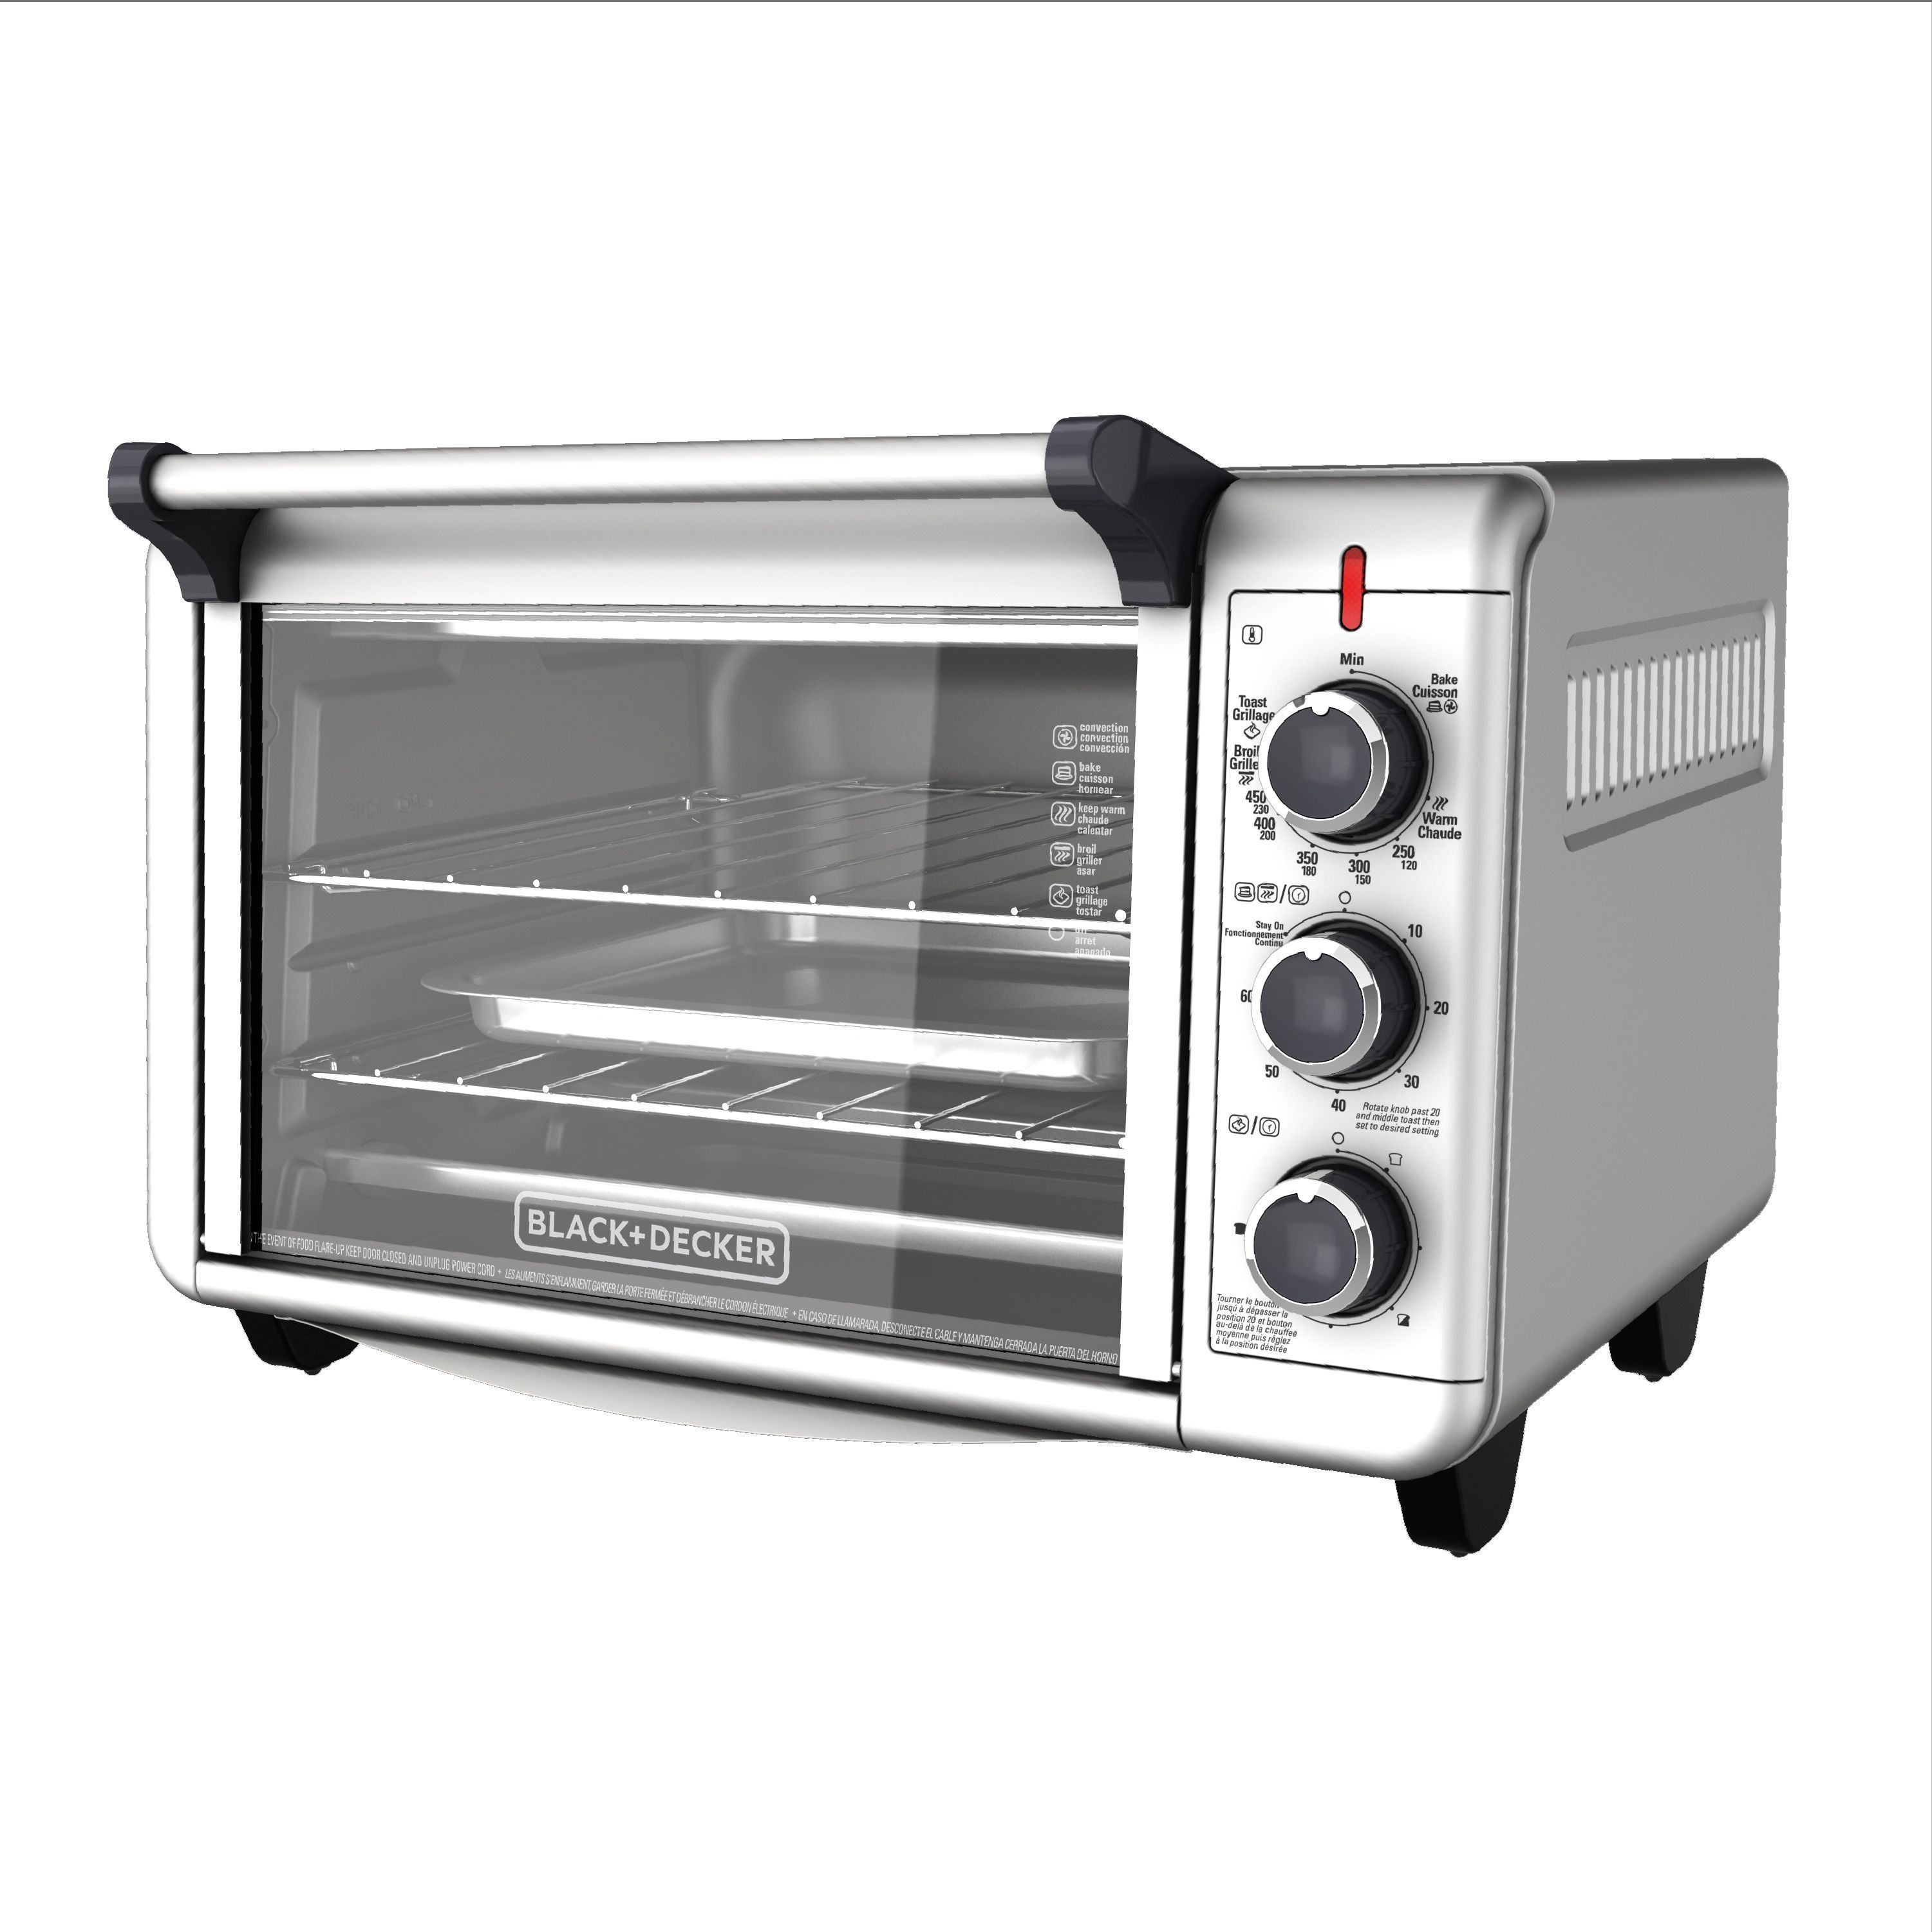 Black Decker Convection Countertop Oven Stainless Steel To3000g